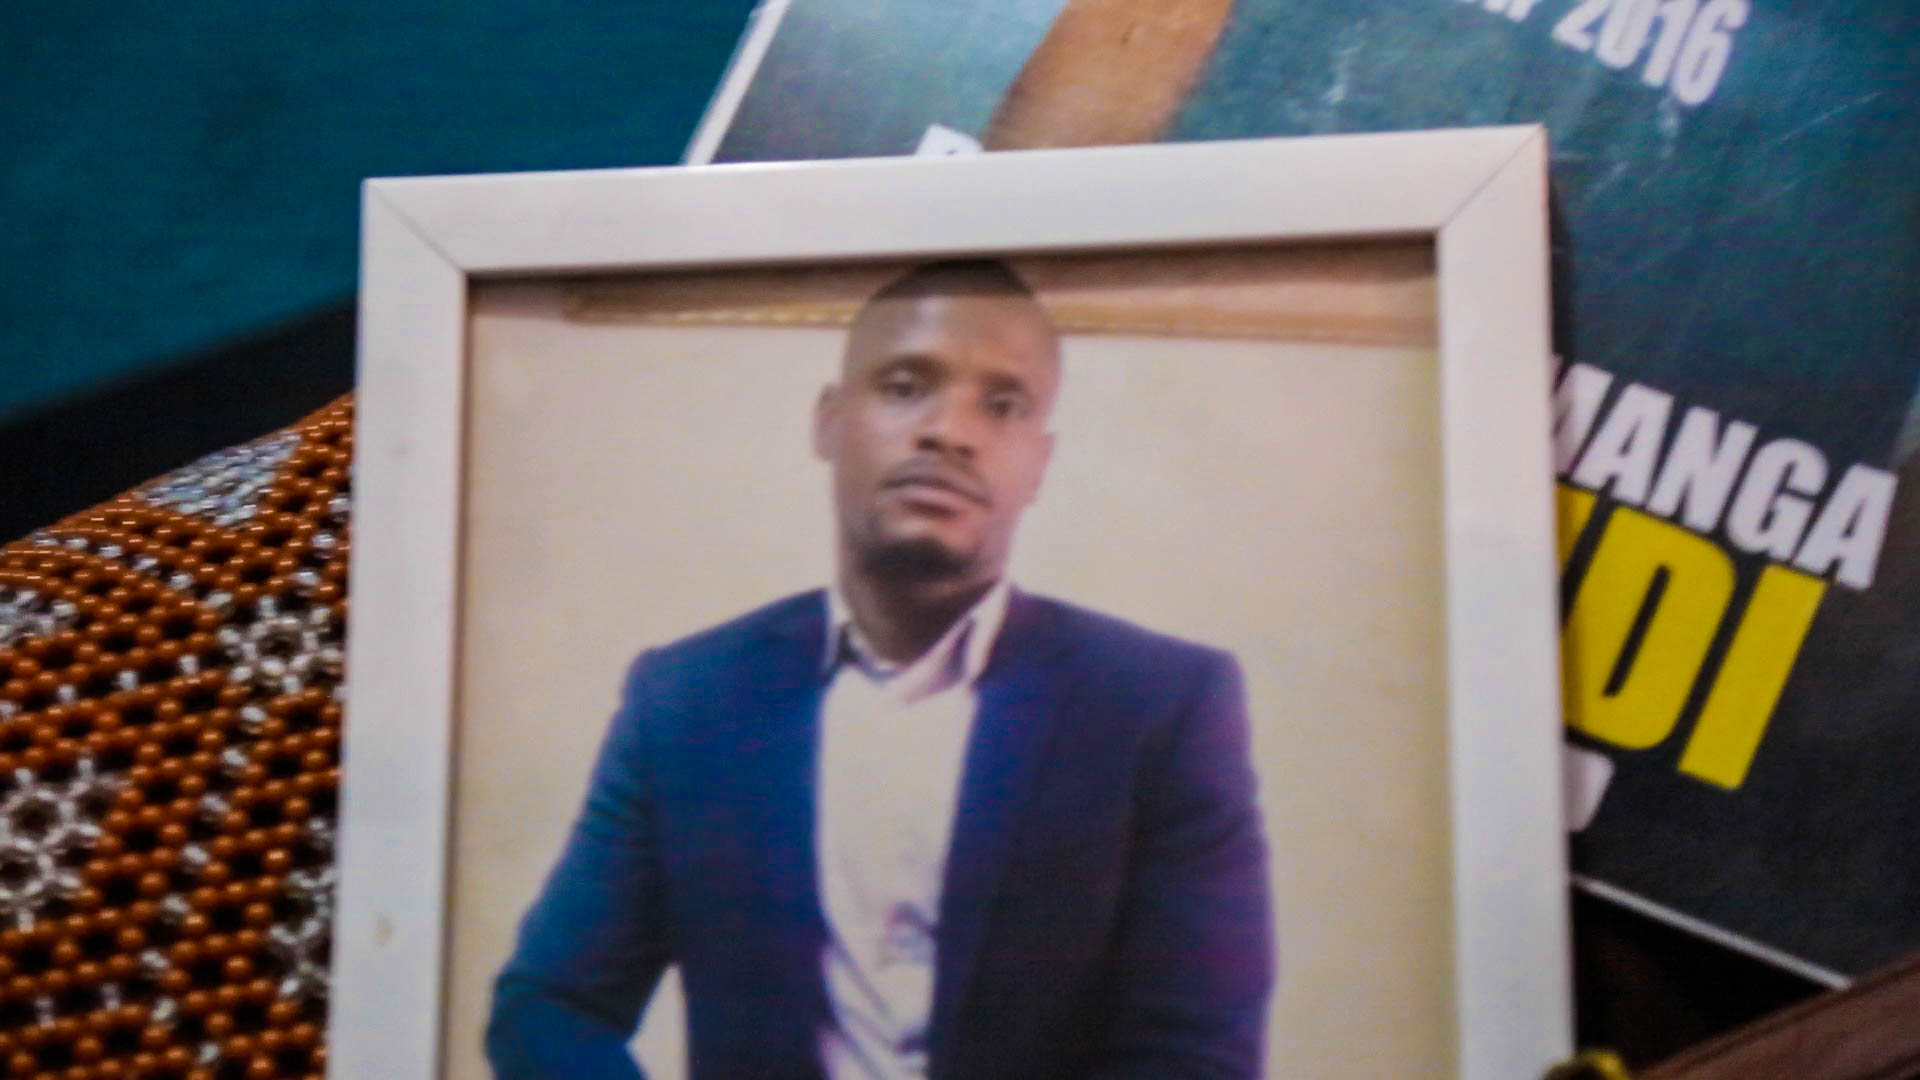 Rossy Mukendi was among those killed in street protests. He leaves behind his wife and two children. (C. Oduah/VOA)